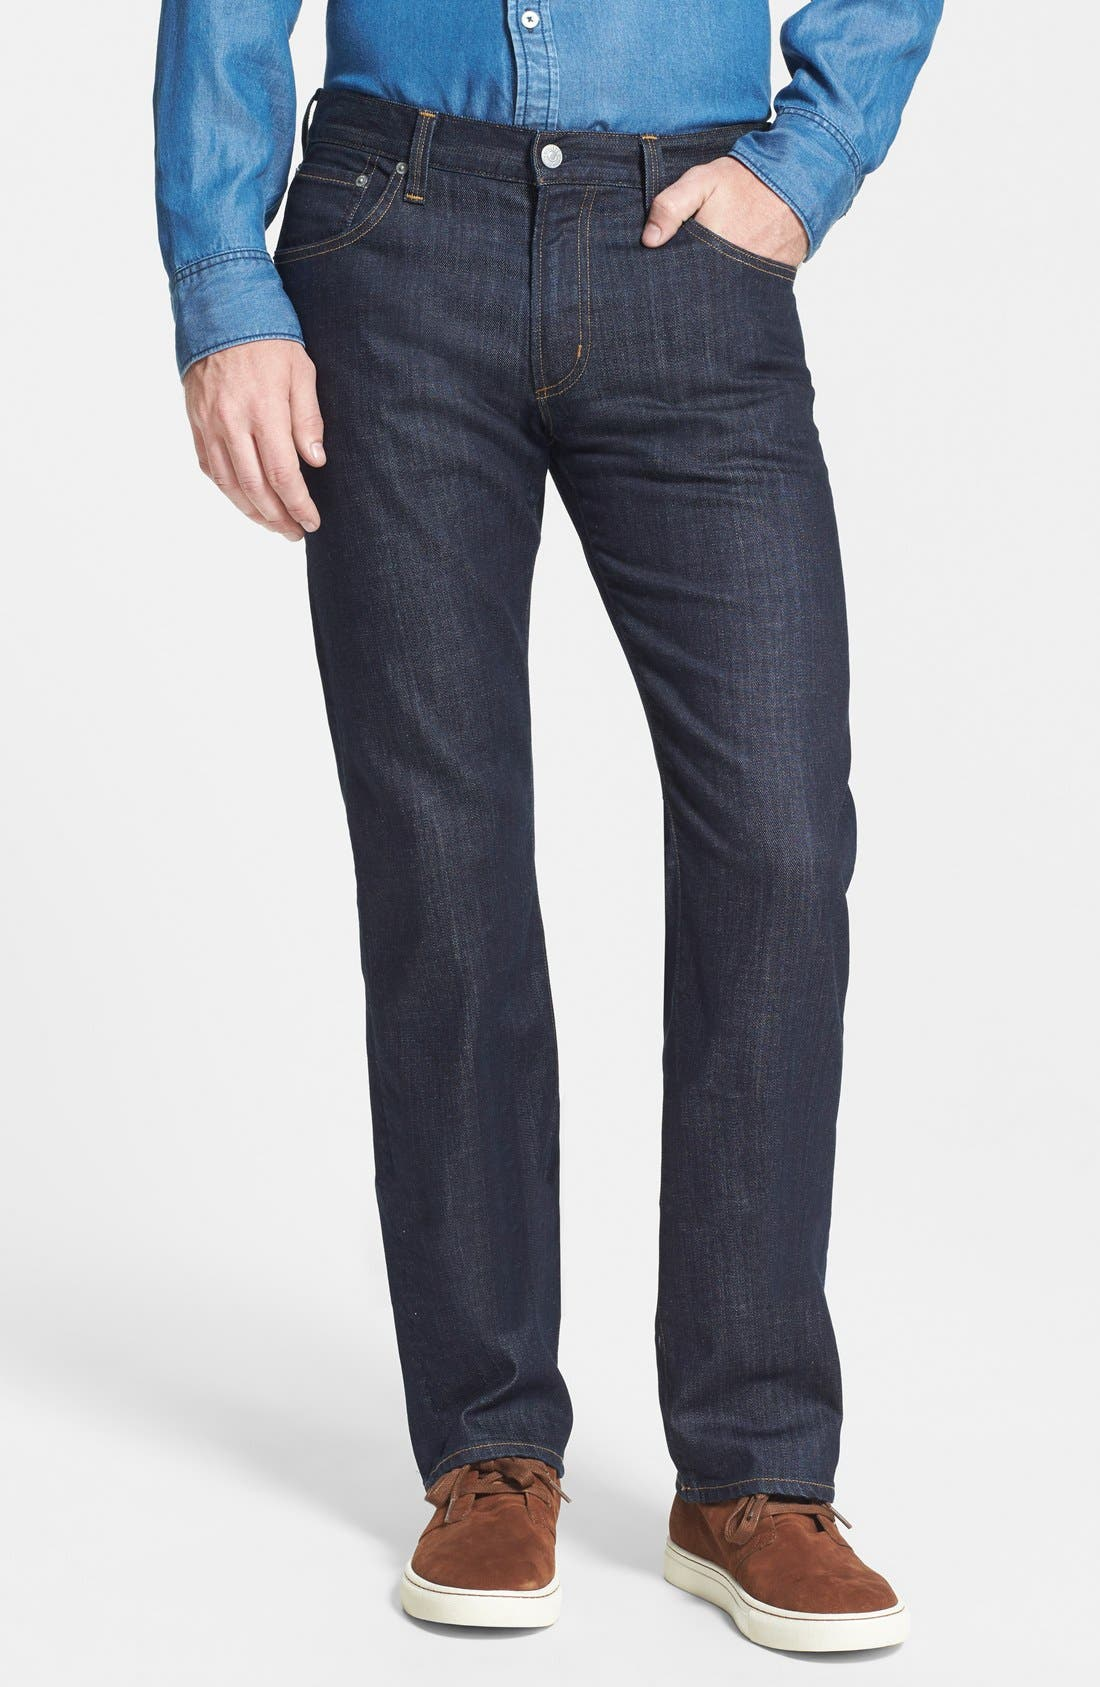 Alternate Image 1 Selected - Citizens of Humanity Sid Classic Straight Leg Jeans (Ultimate)